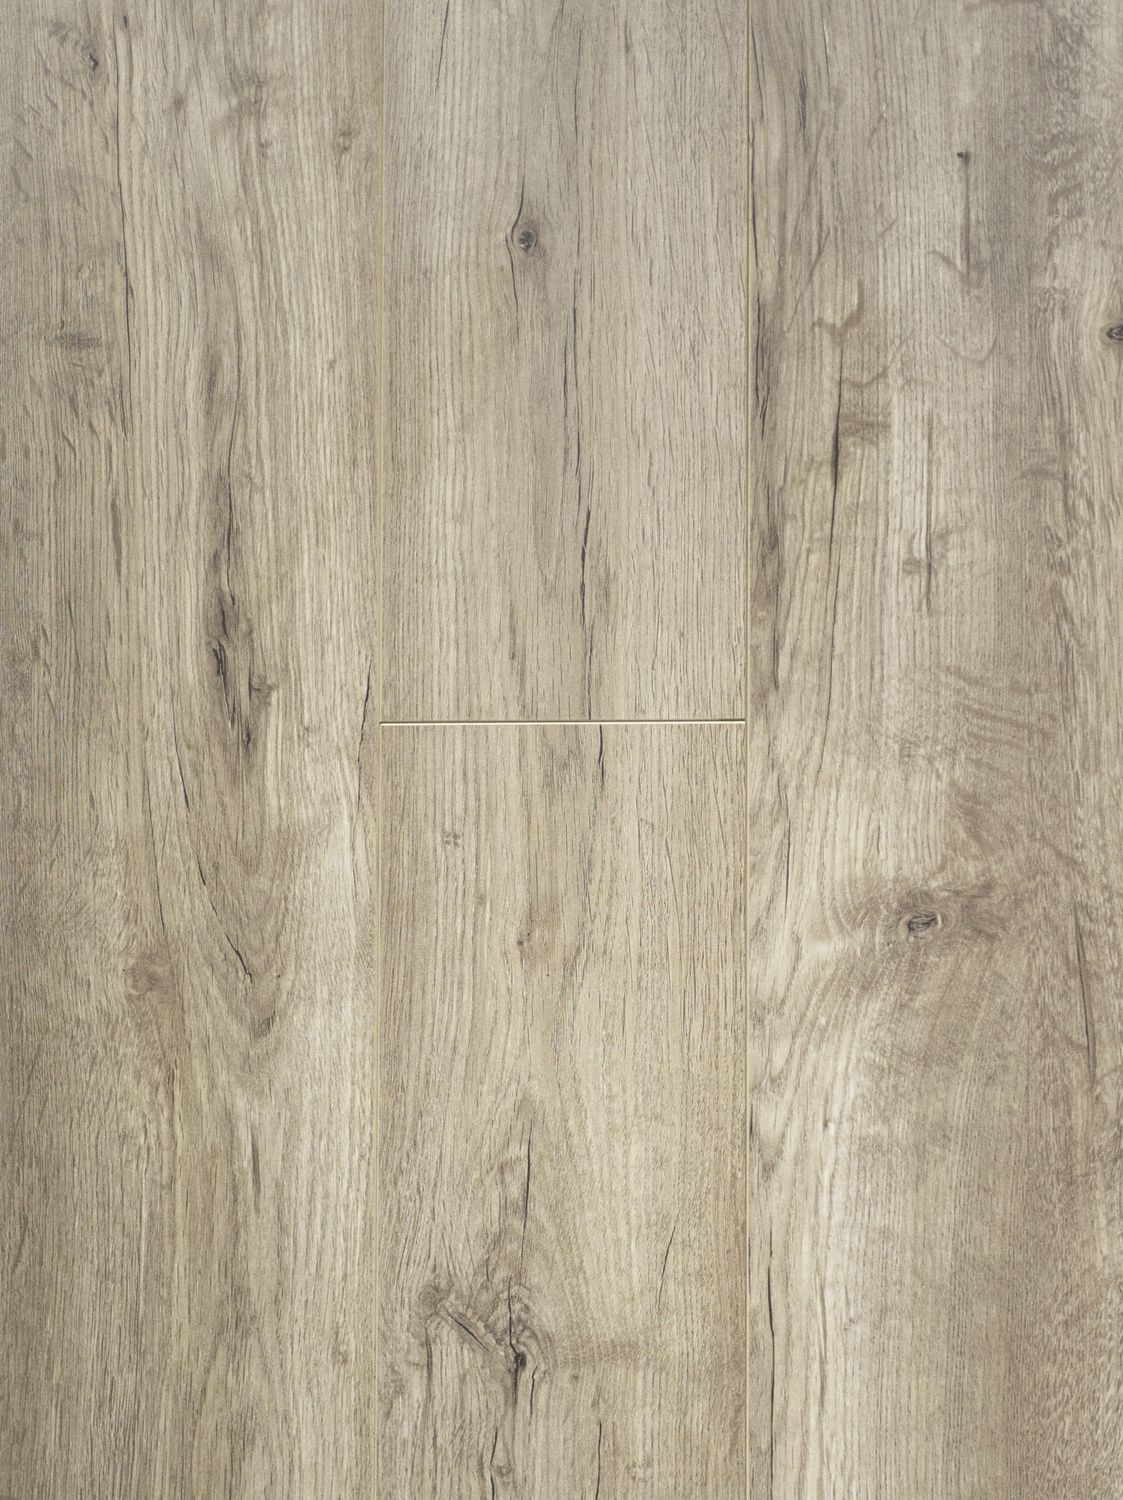 ft w laminate oak floors flooring x plank ca in embossed ellicott l wood